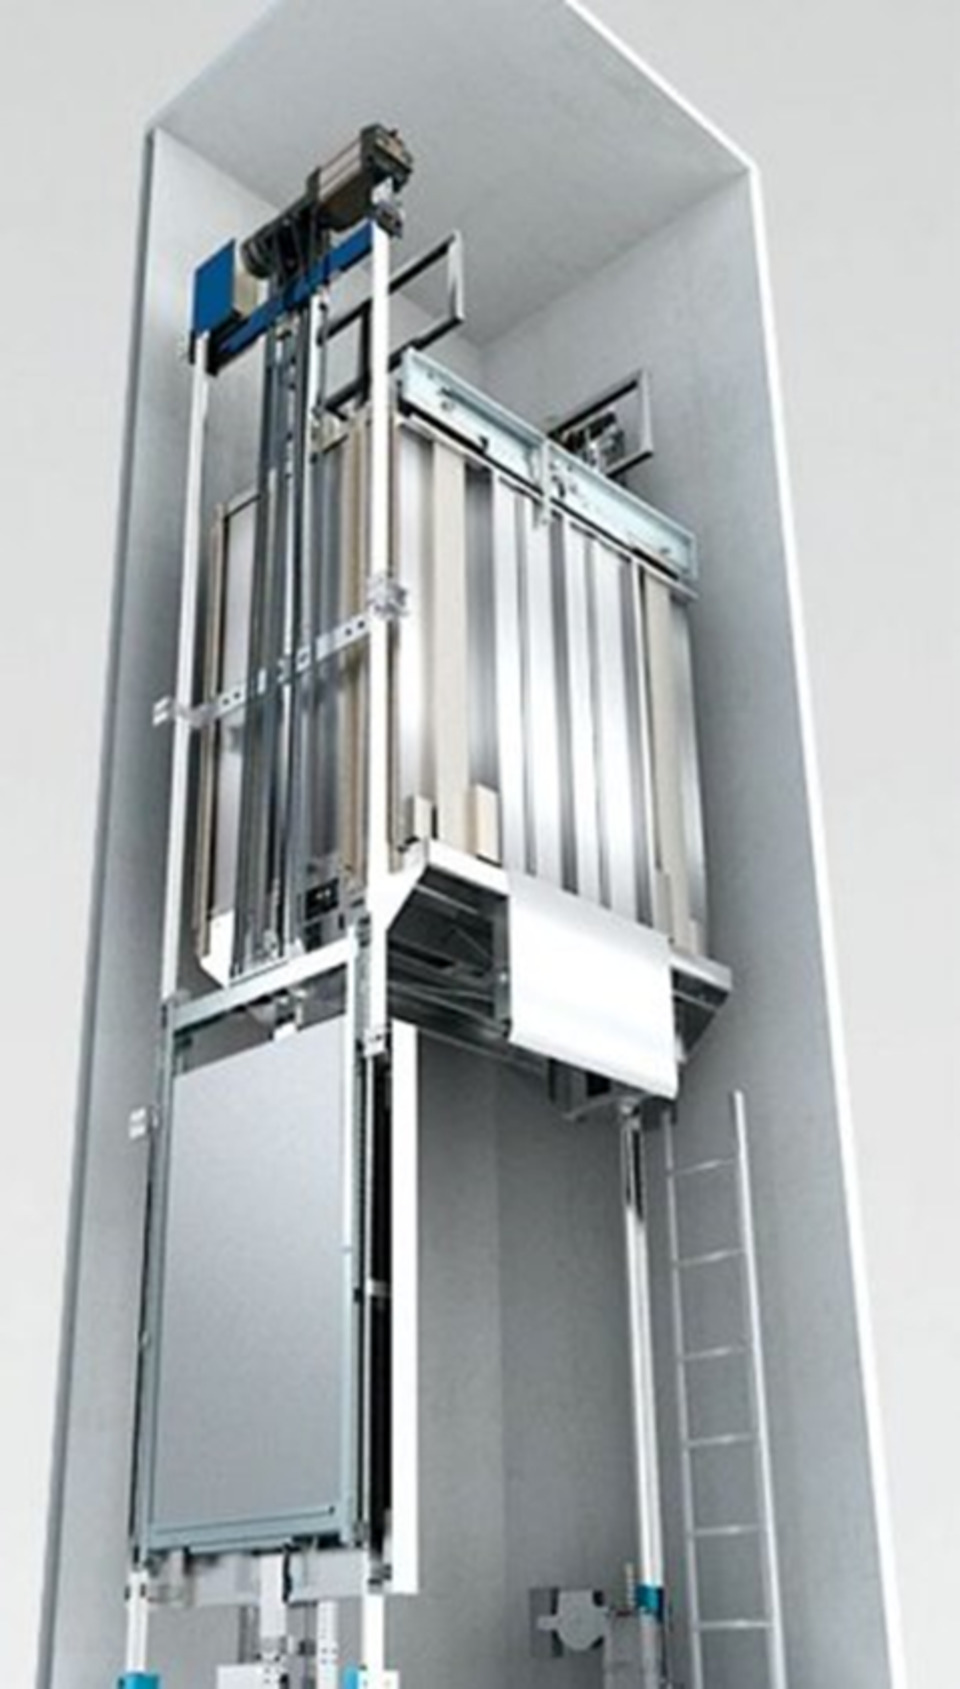 New Schindler 3100 Machine Room-Less Traction Elevator